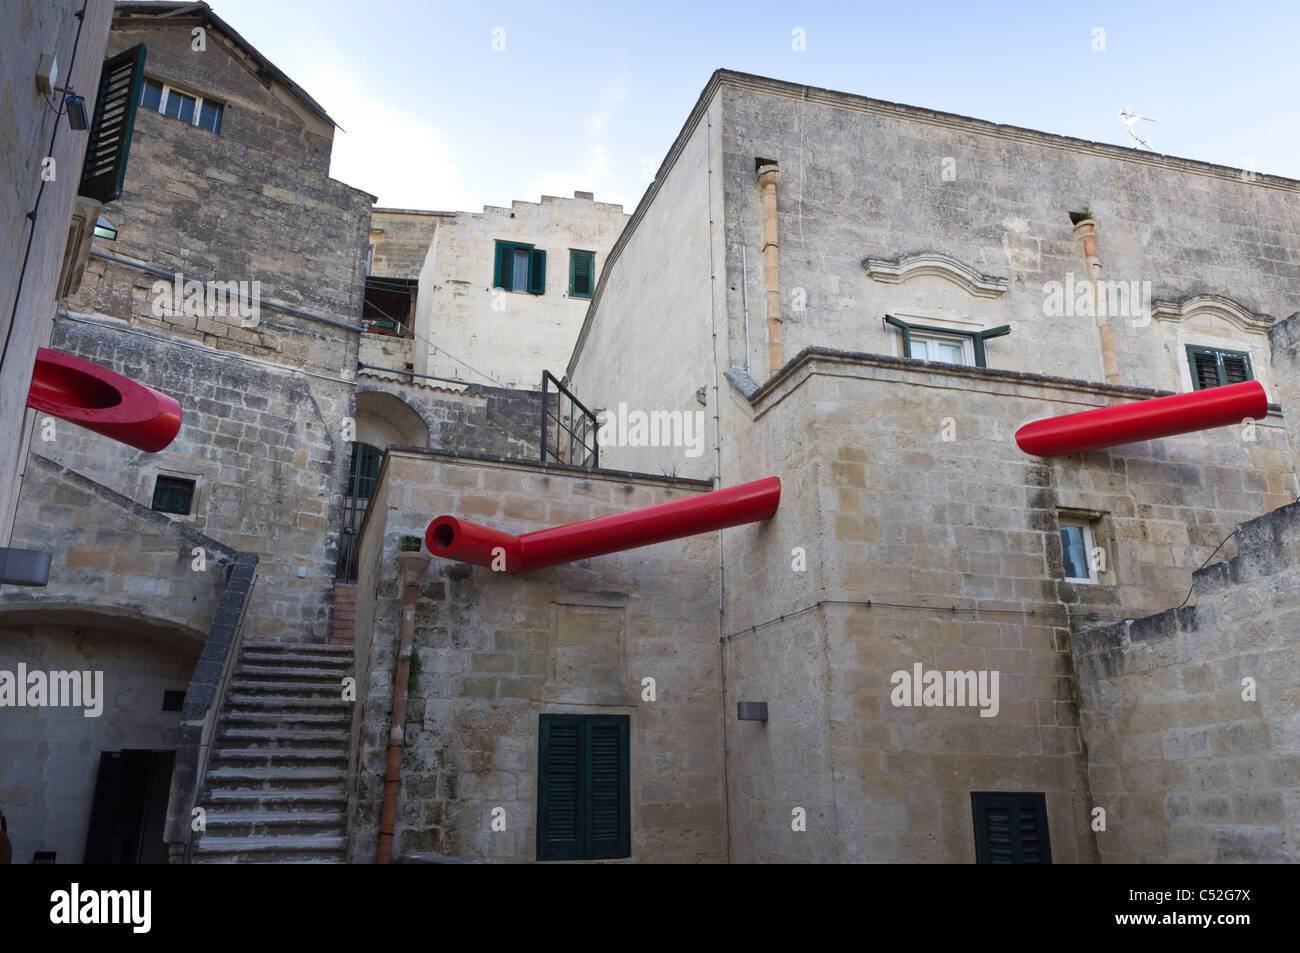 MUSMA art gallery housed in caves of the UNESCO site, the Sasso ...